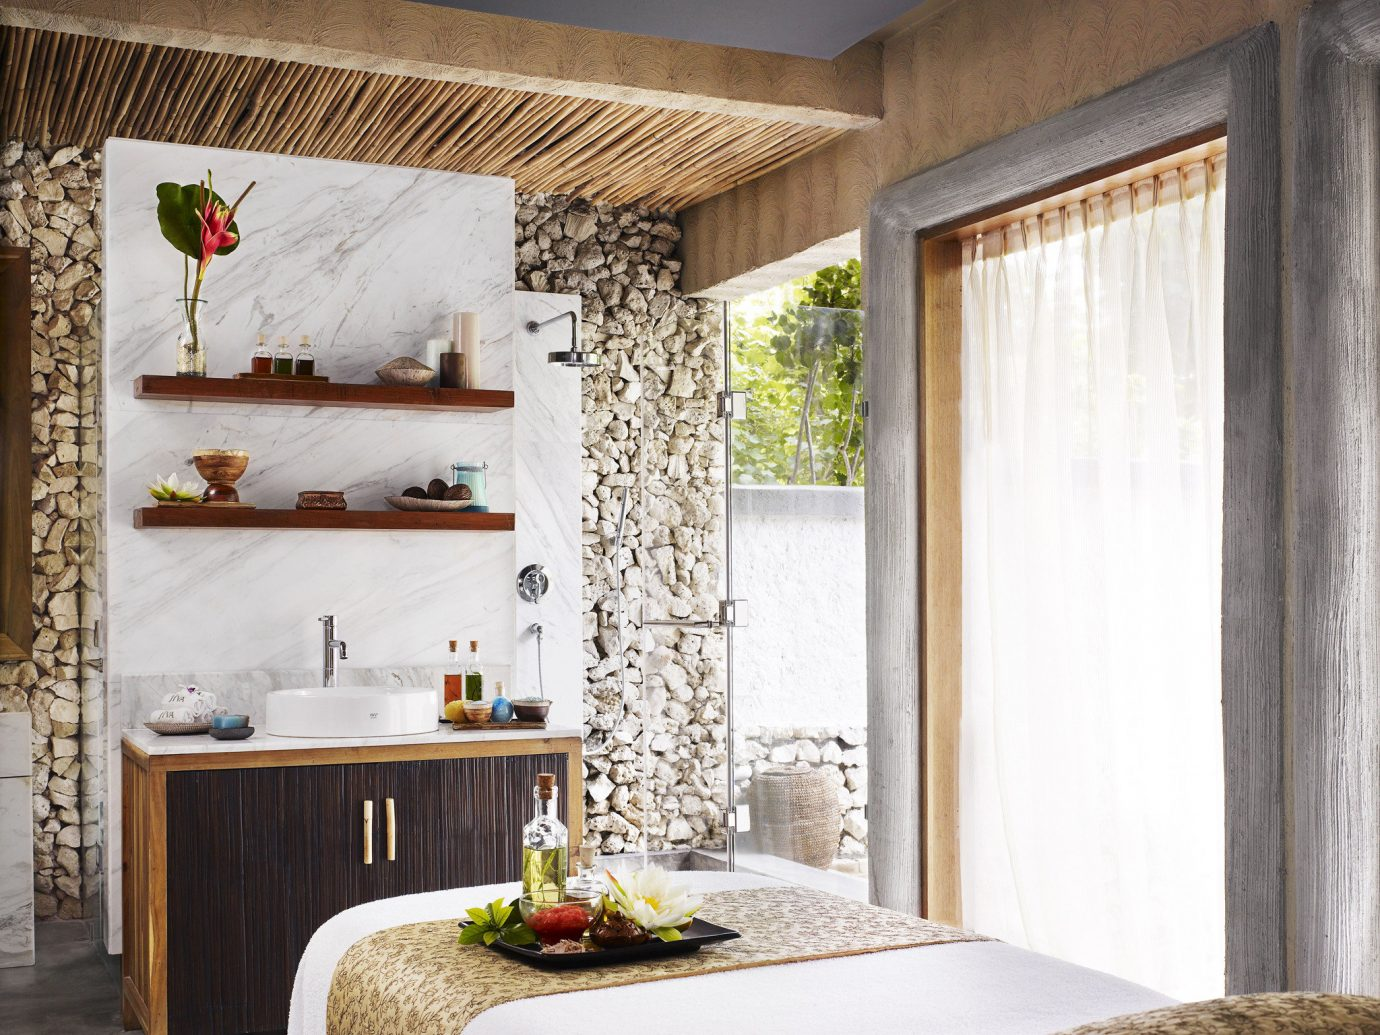 Beachfront Family Hotels Resort Spa Wellness indoor wall room property living room Living interior design home floor wood ceiling window covering estate curtain farmhouse furniture Design cottage window treatment Bedroom stone